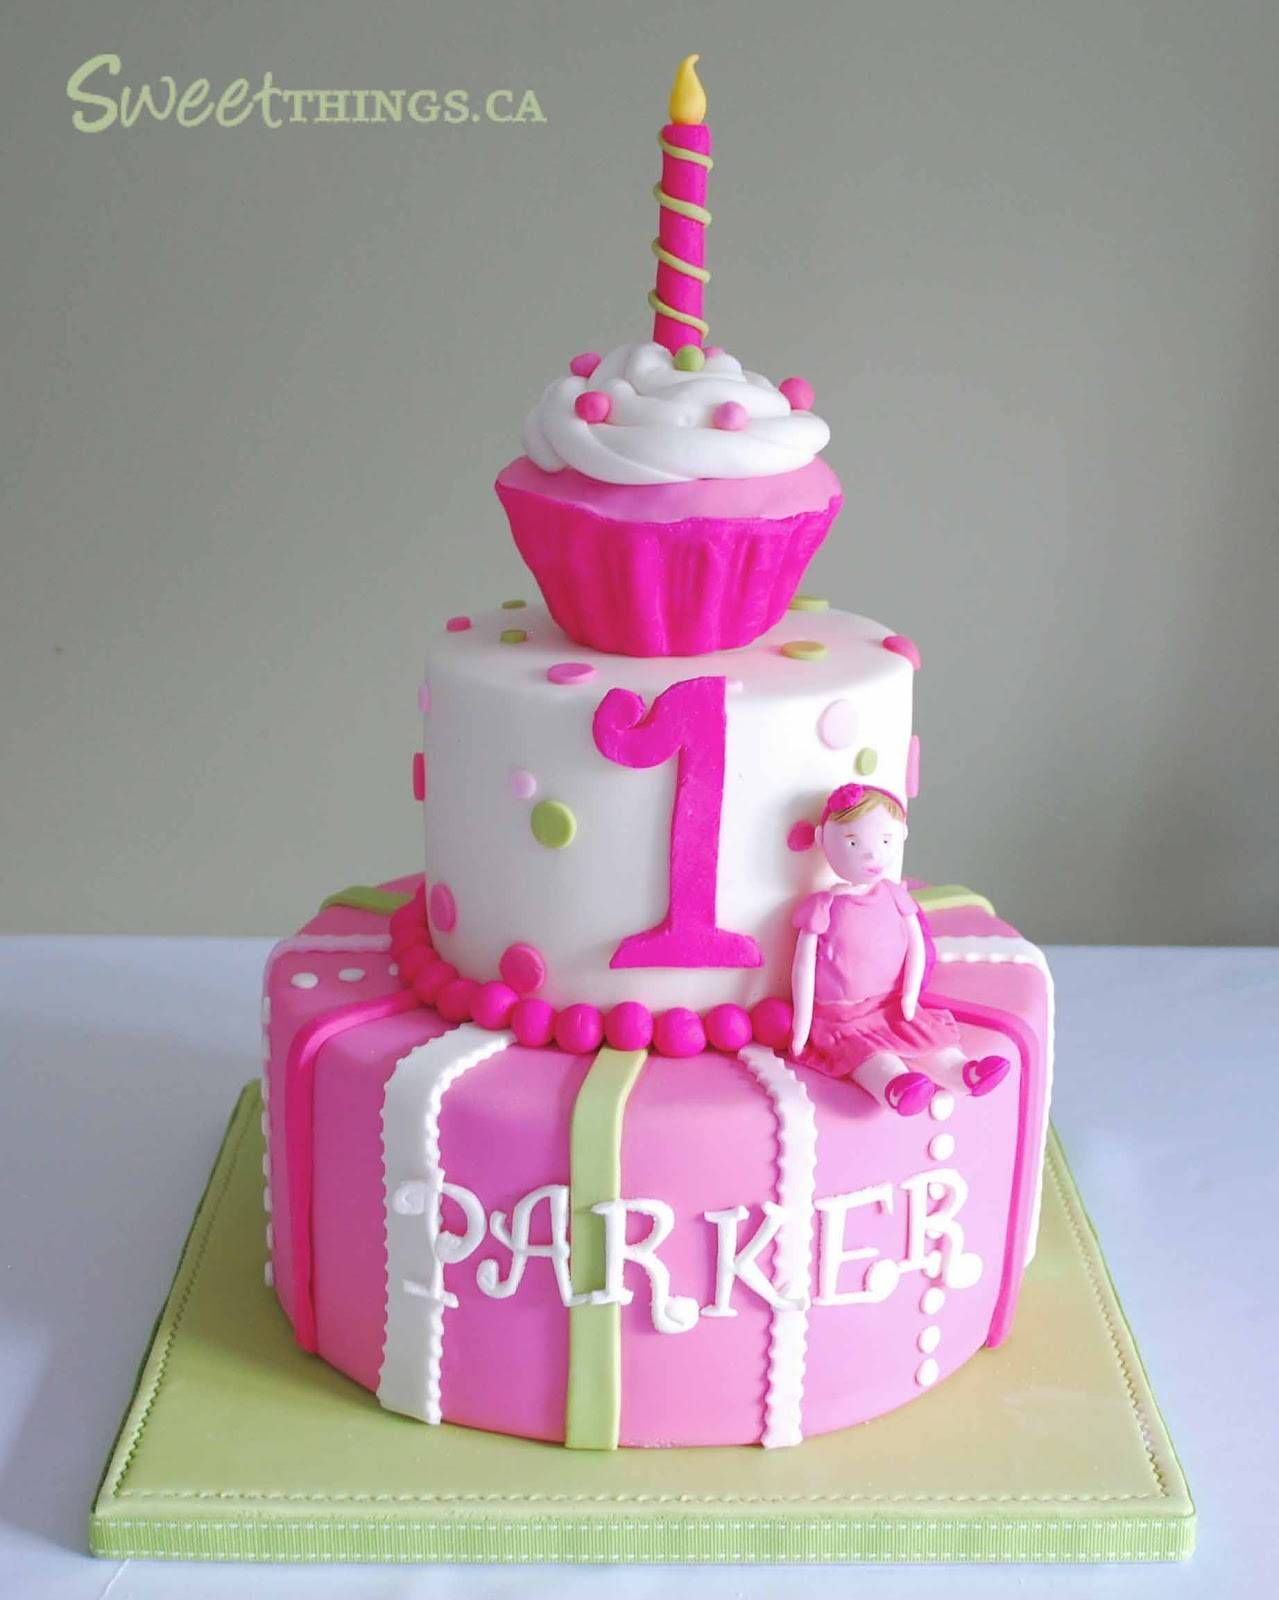 Cake Boss Cupcake Decorating Ideas : 1st birthday girl ideas cake 1st Birthday Cake Ideas For ...